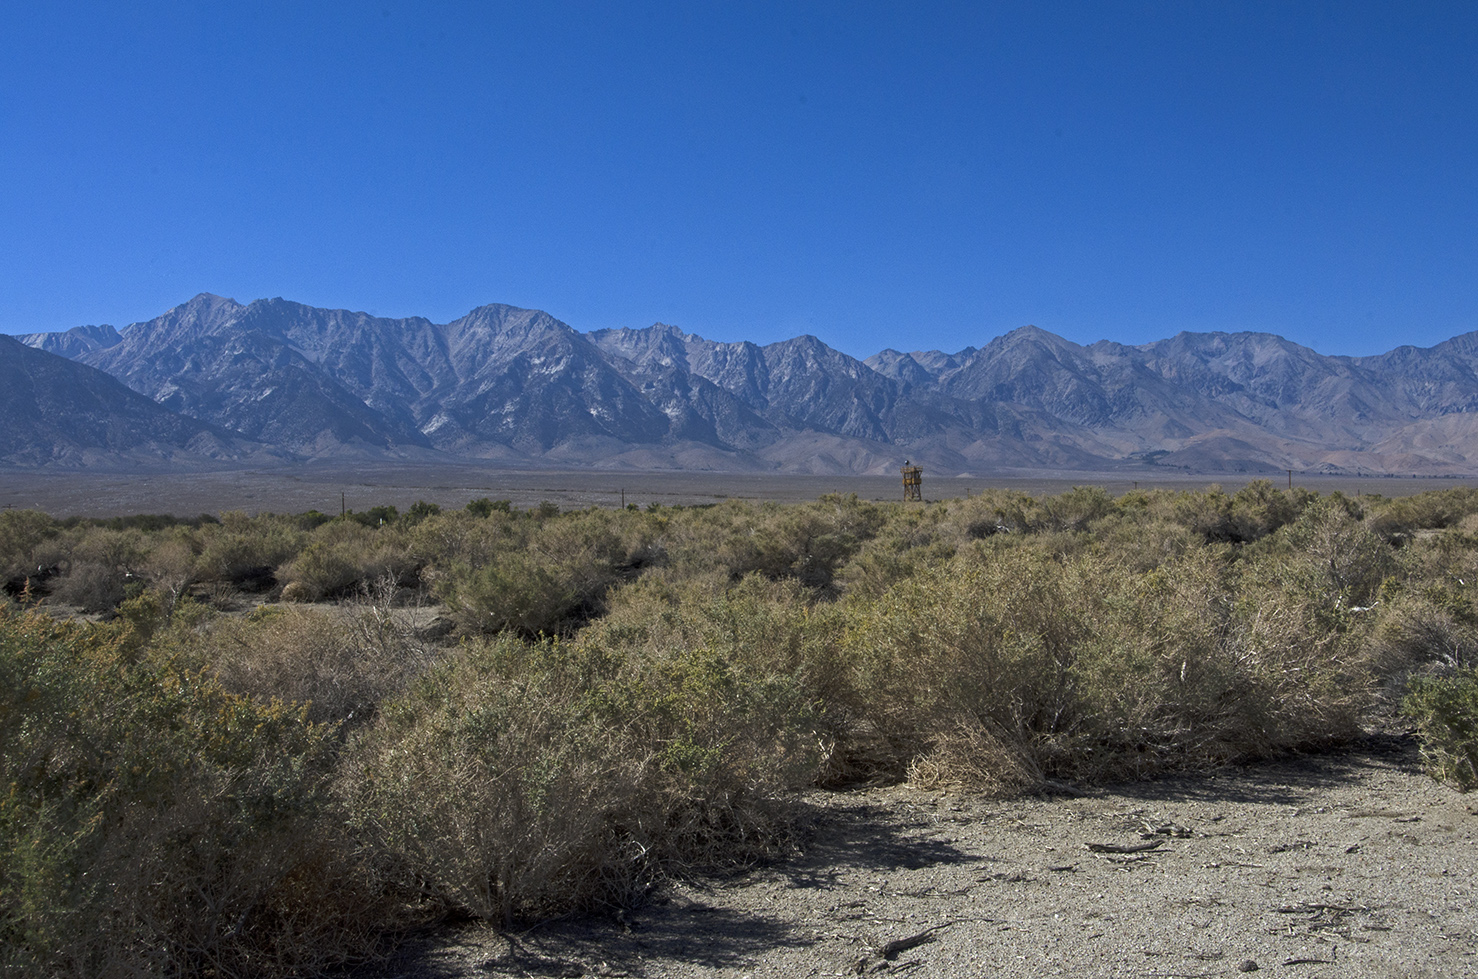 A reconstruction of one of the Manzanar Guard Towers in the distance.